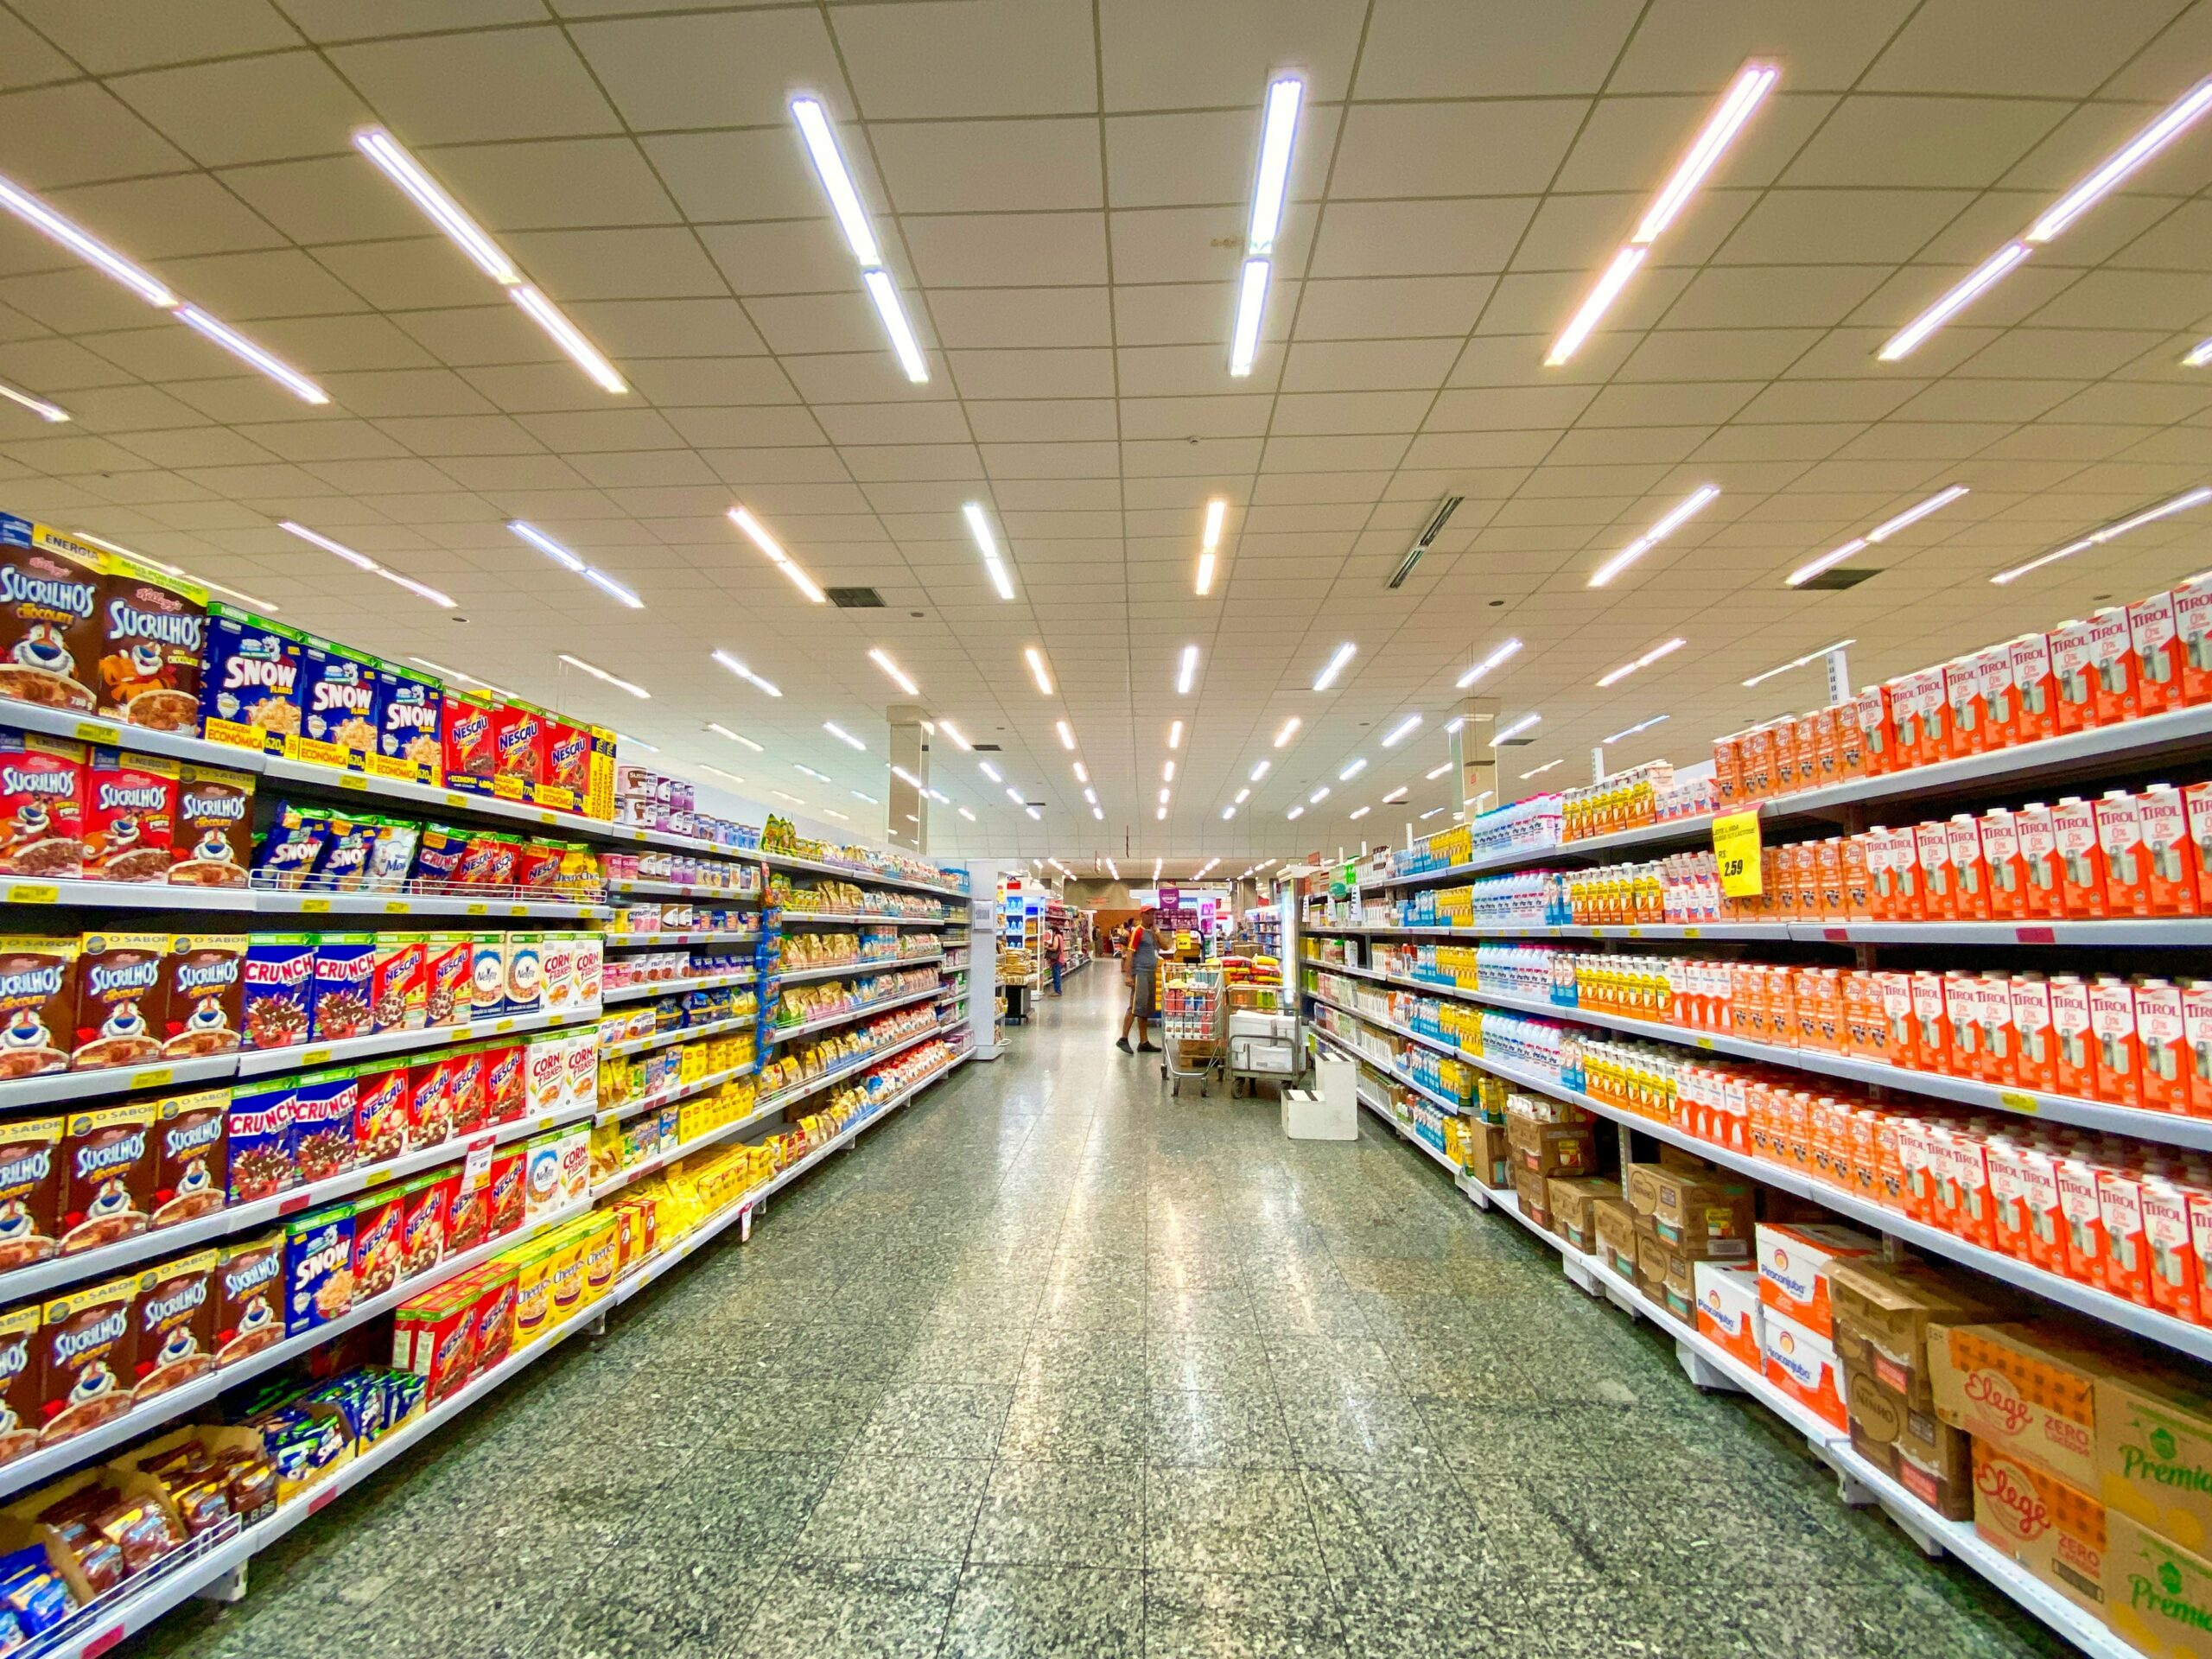 5 ways how retail shelf monitoring solutions improve business performance